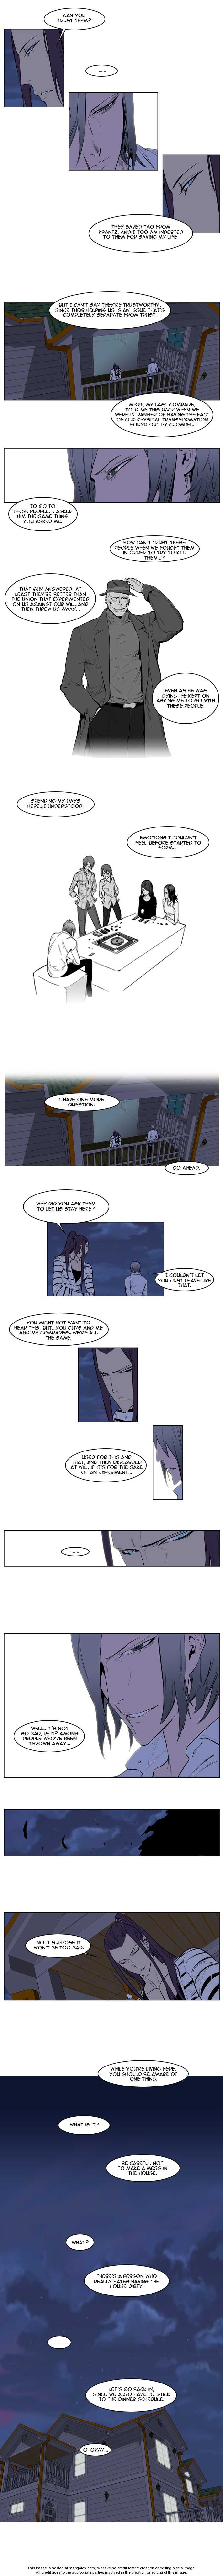 Noblesse 143 Page 3